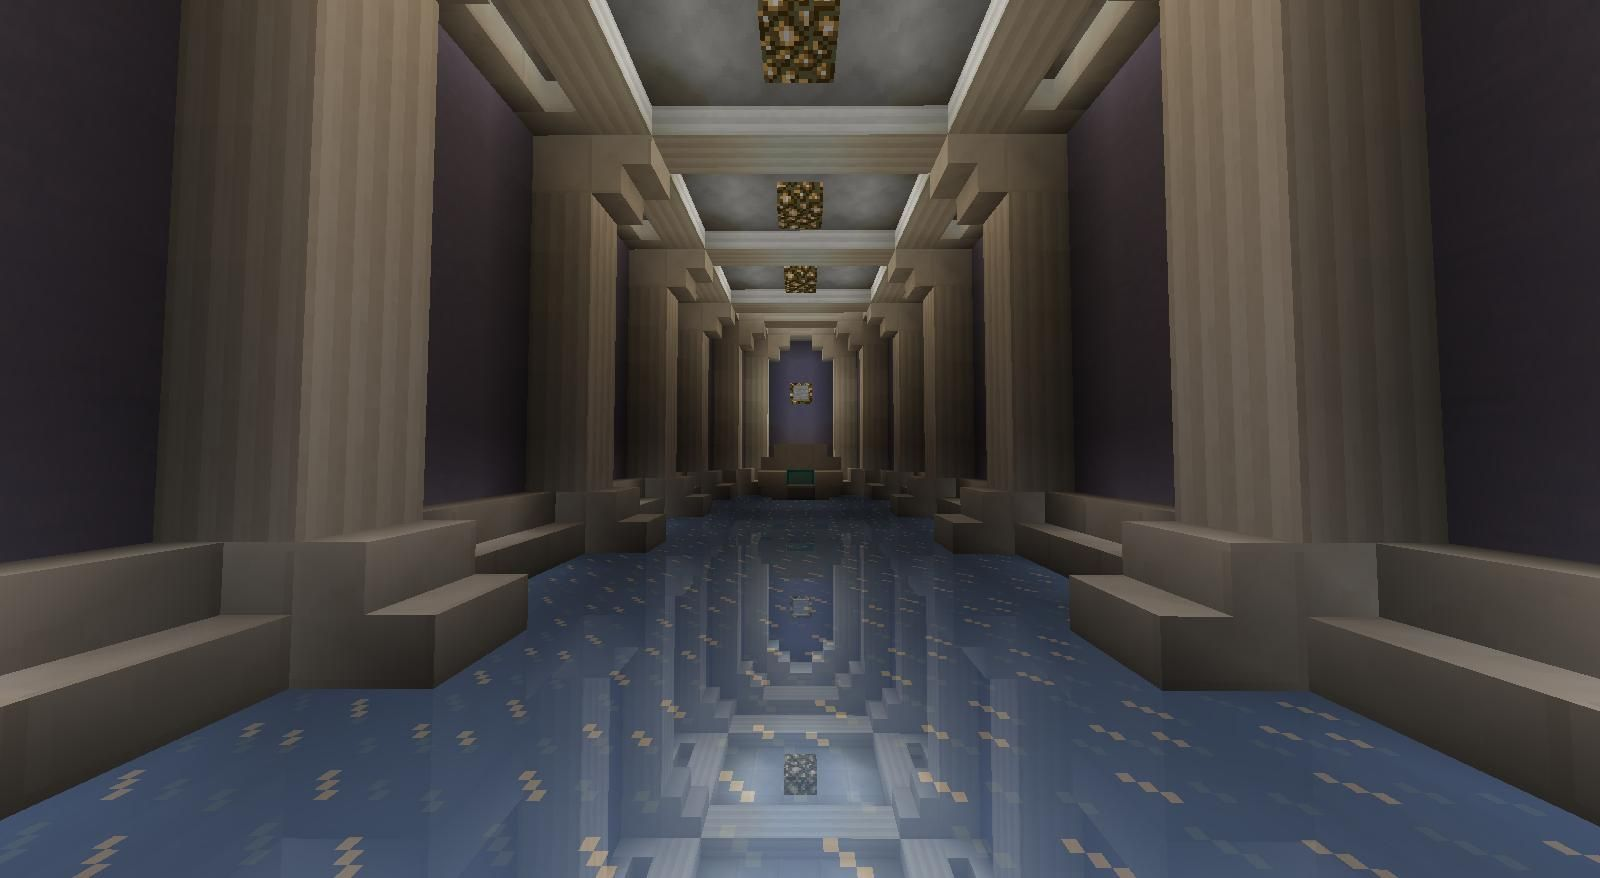 Detail Mirror Effect Using Ice Minecraft Interior Design